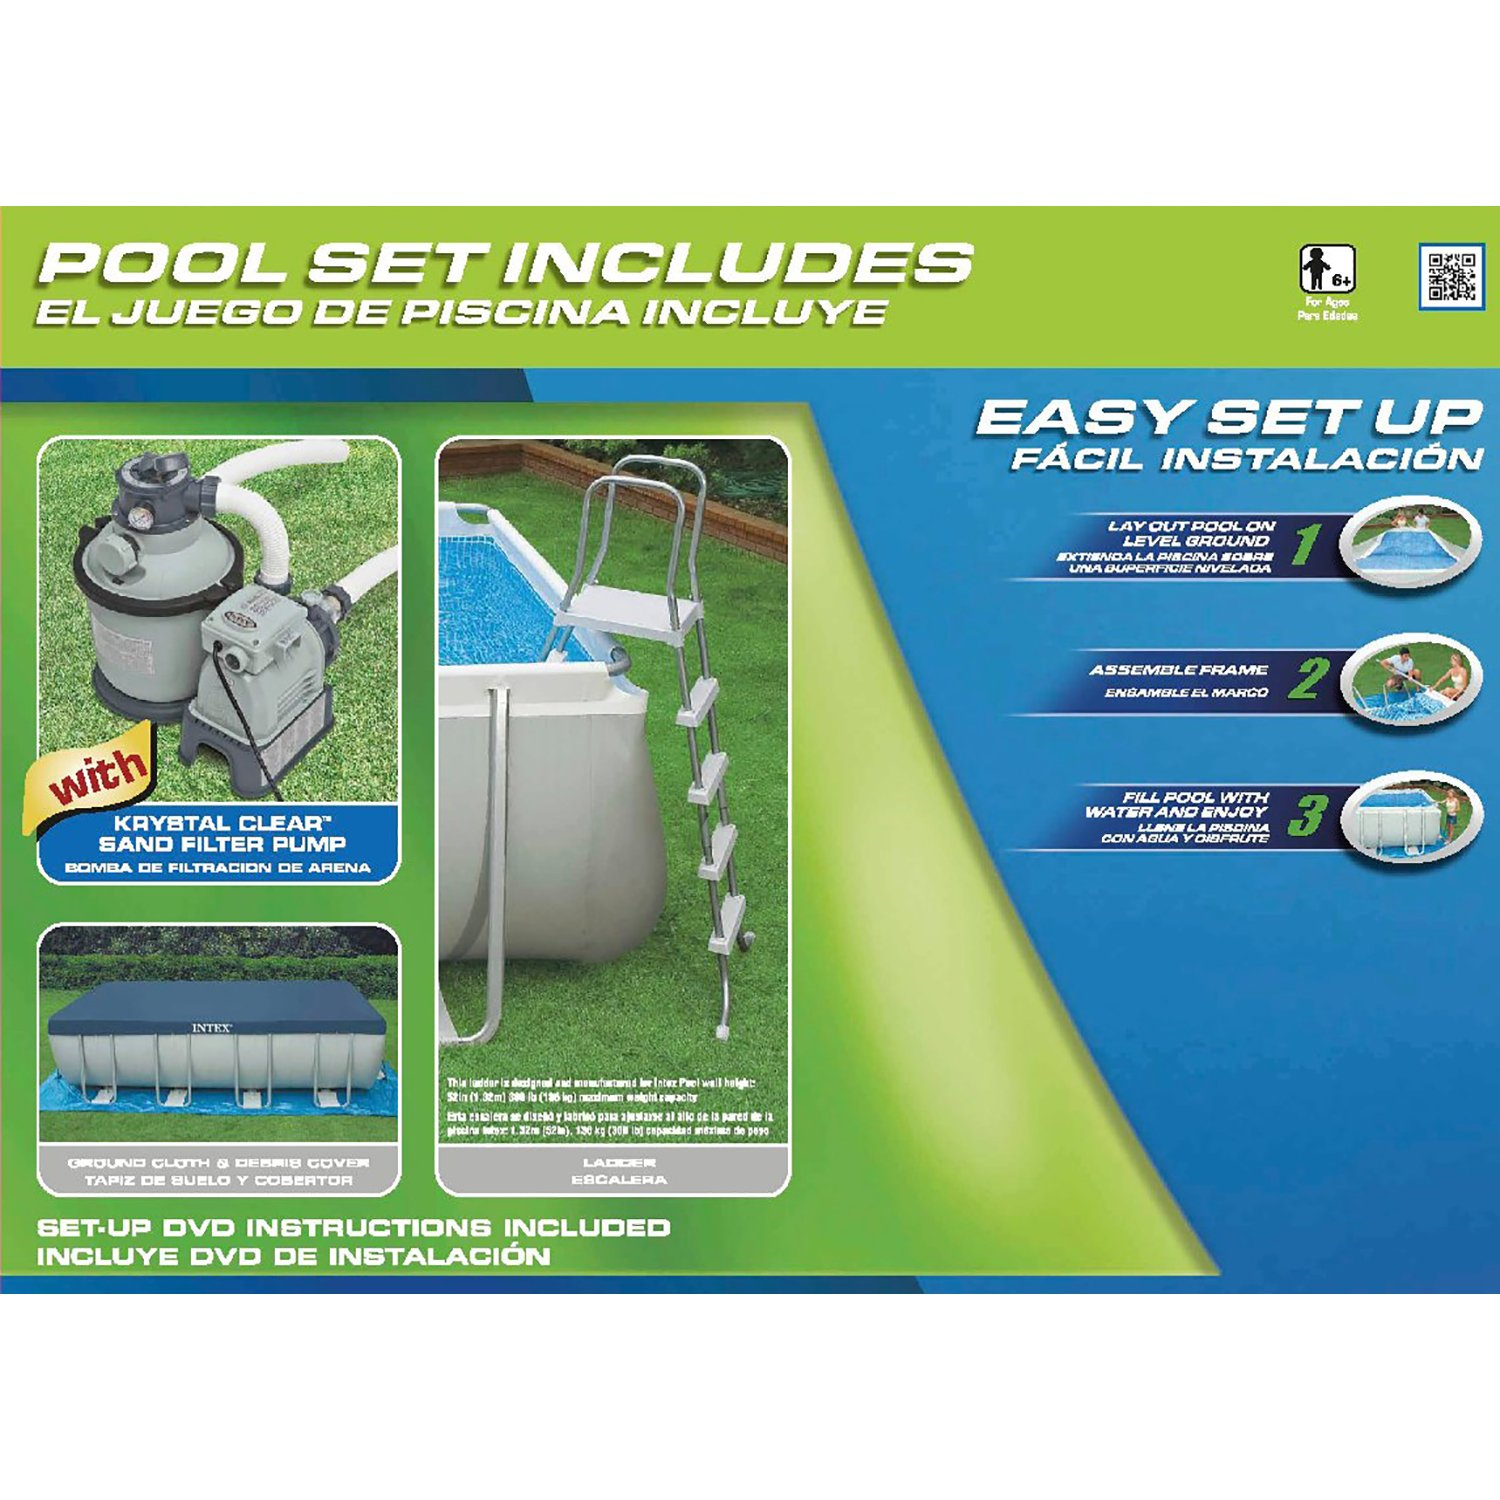 Amazon.com : Intex 18ft X 9ft X 52in Ultra Frame Rectangular Pool ...